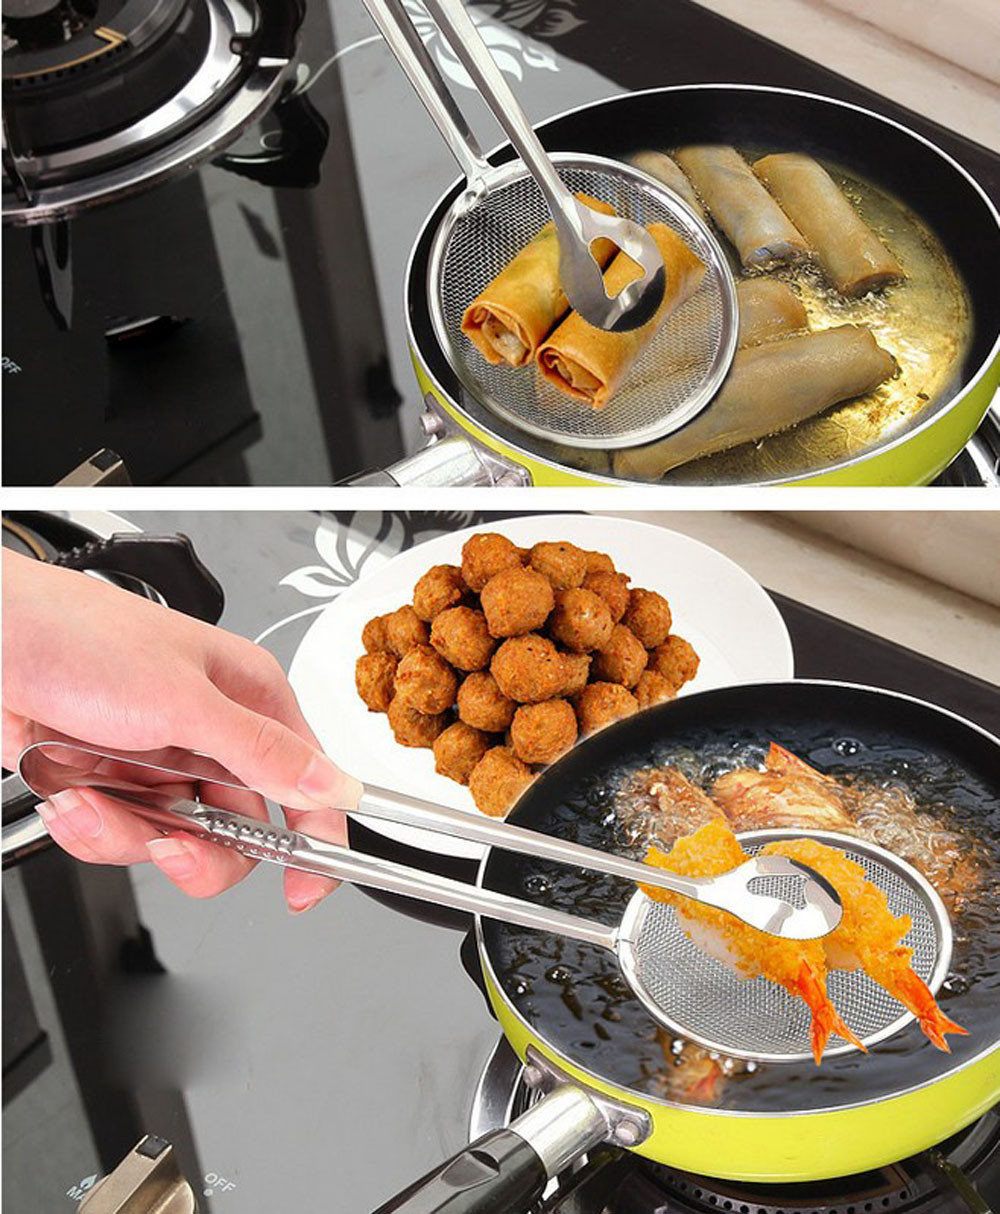 New Multi-functional Stainless Steel Clamp Strainer Filter Spoon With Clip Food Oil-Frying Salad BBQ Filter Kitchen Supplies